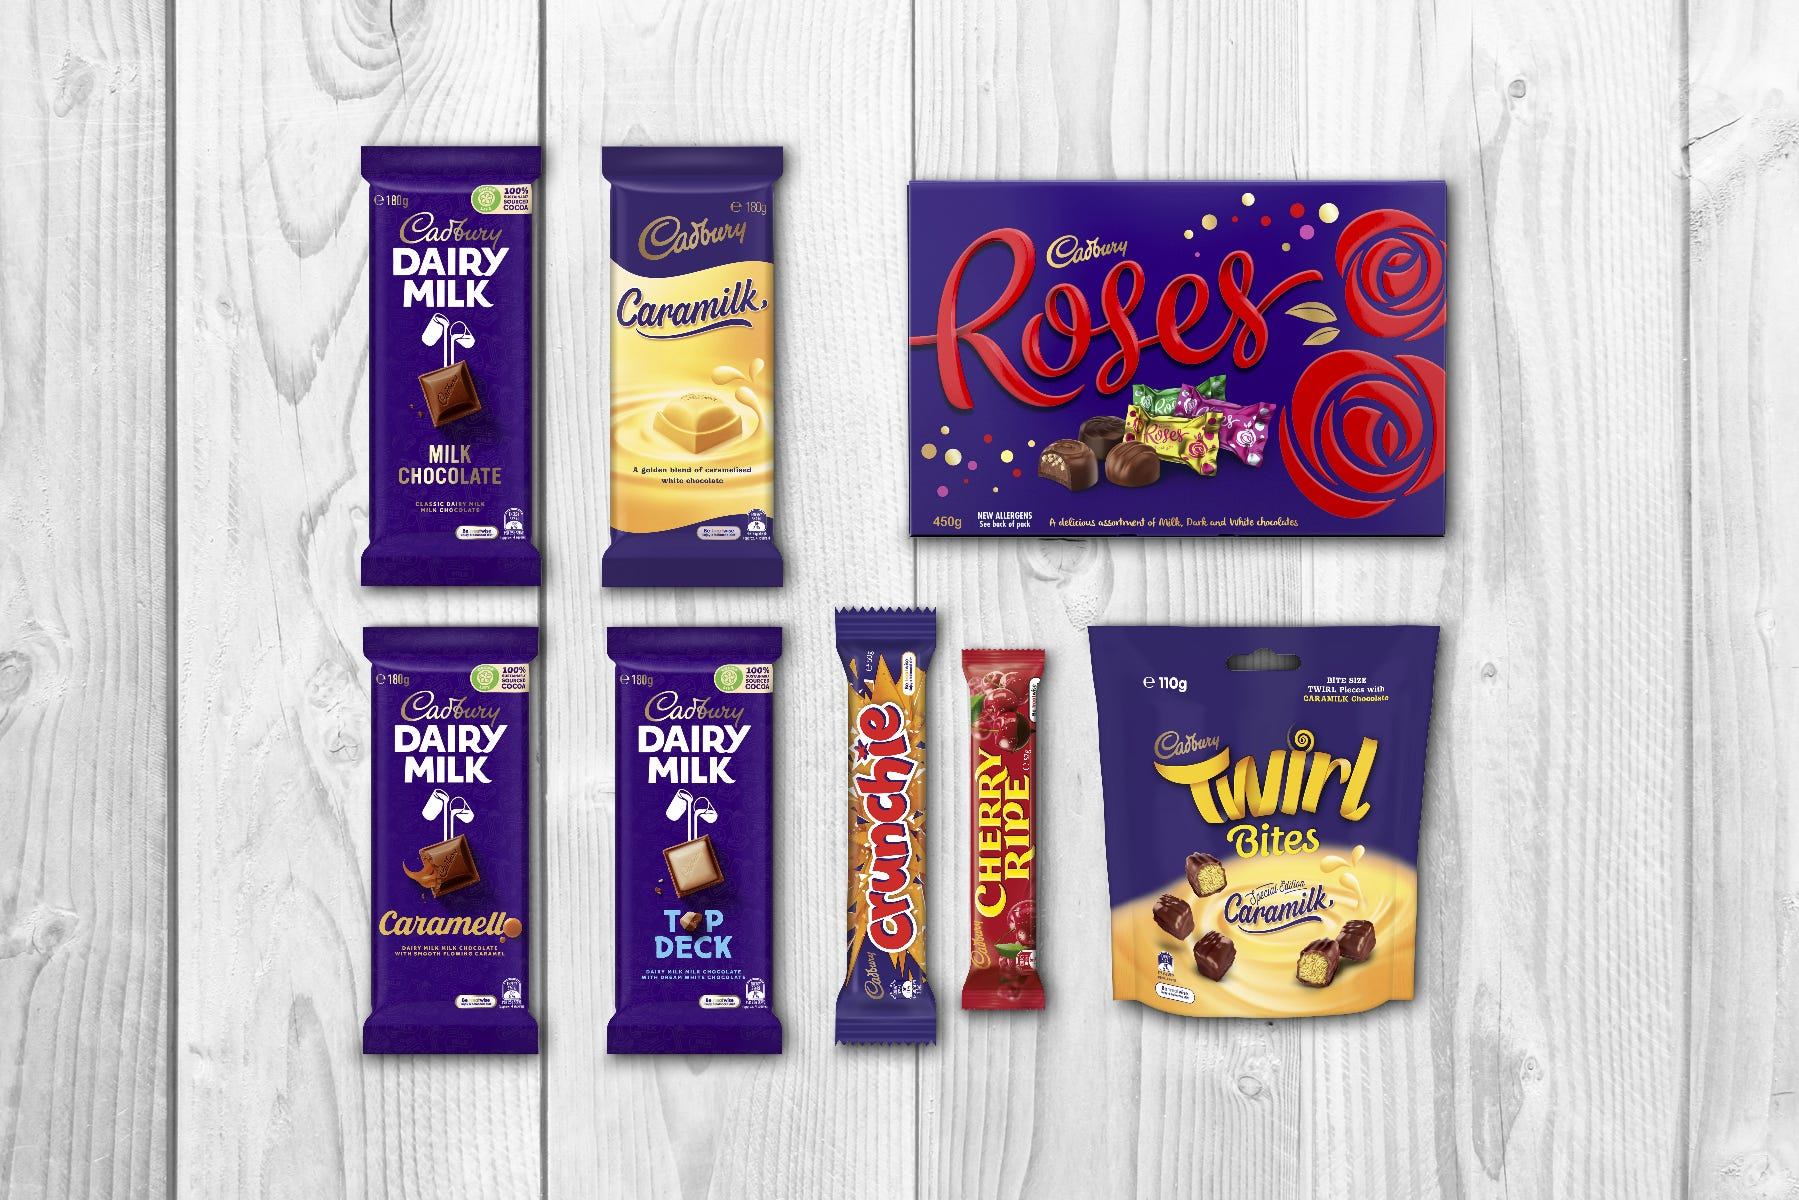 Cadbury Roses Very Much Gift Hamper